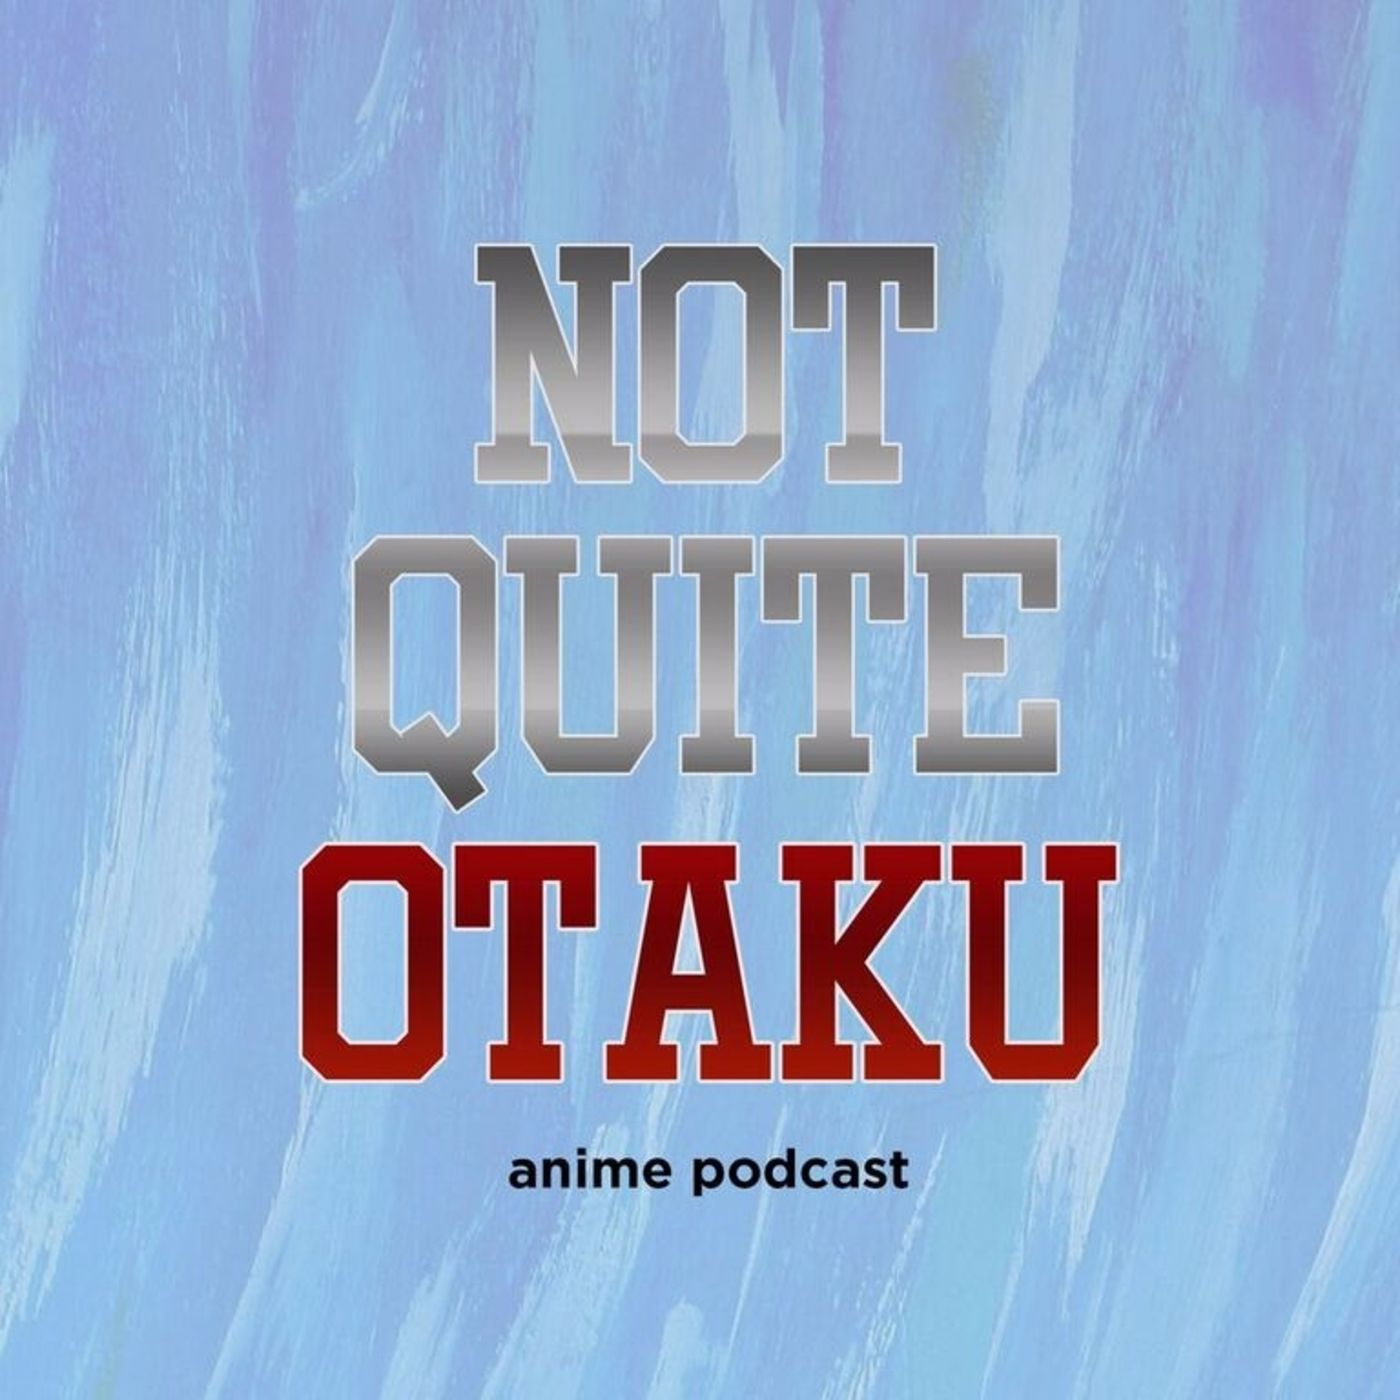 Not Quite Otaku Anime Podcast